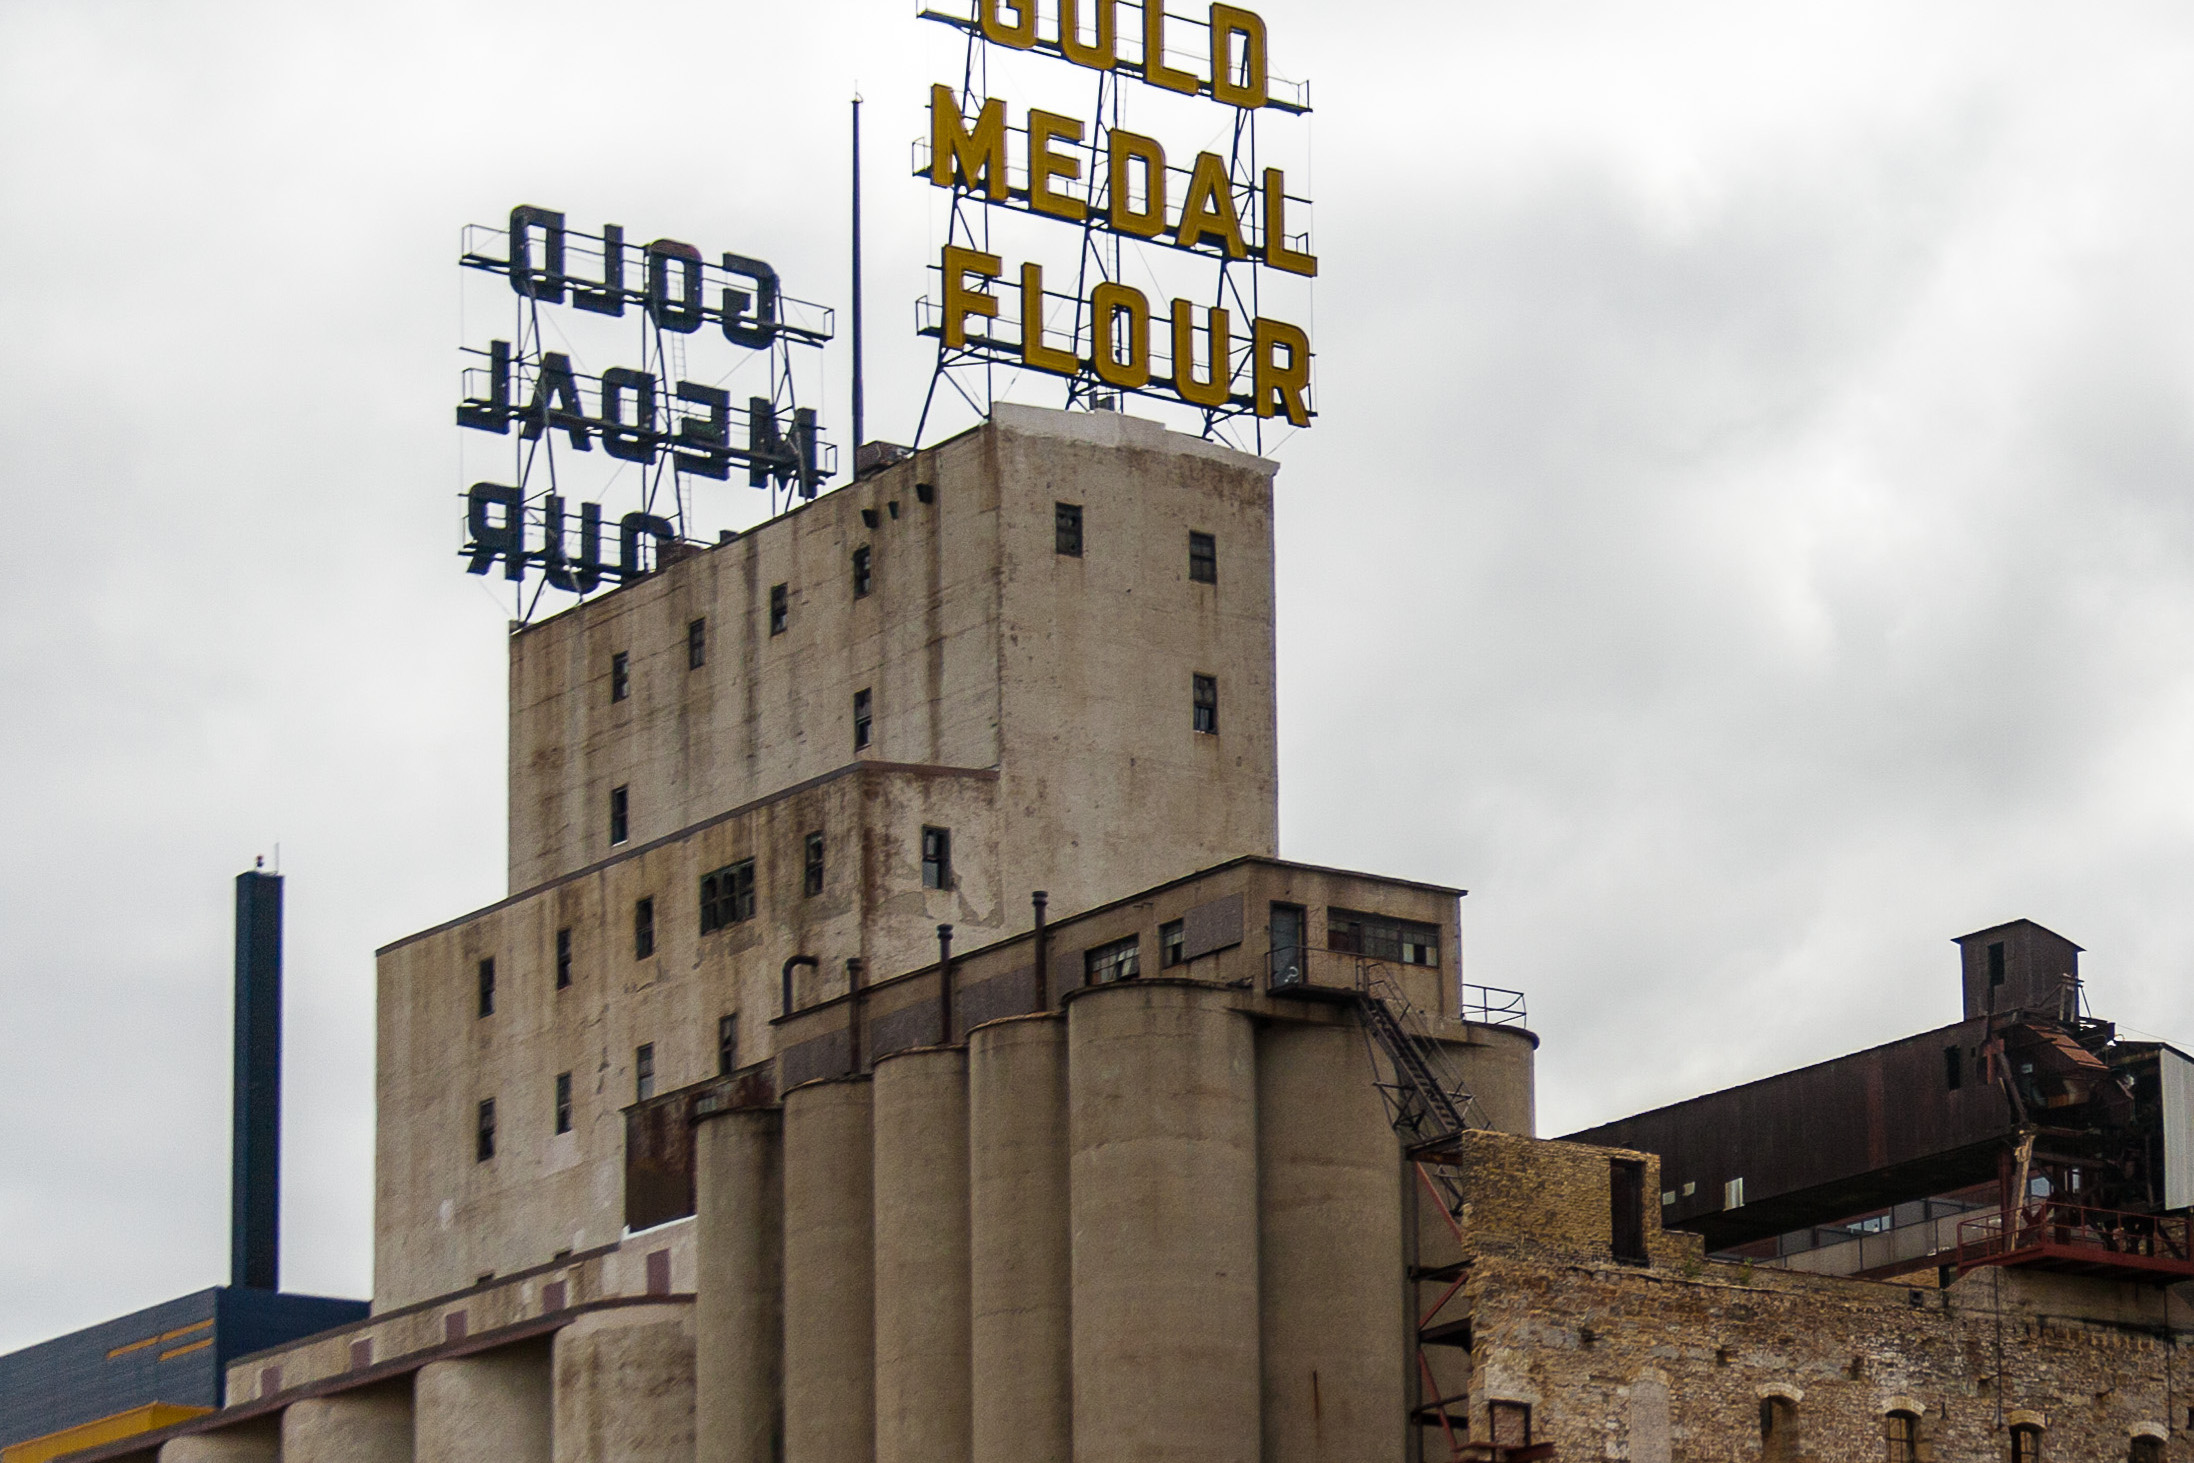 A Gold Medal sign towers over a flour mill